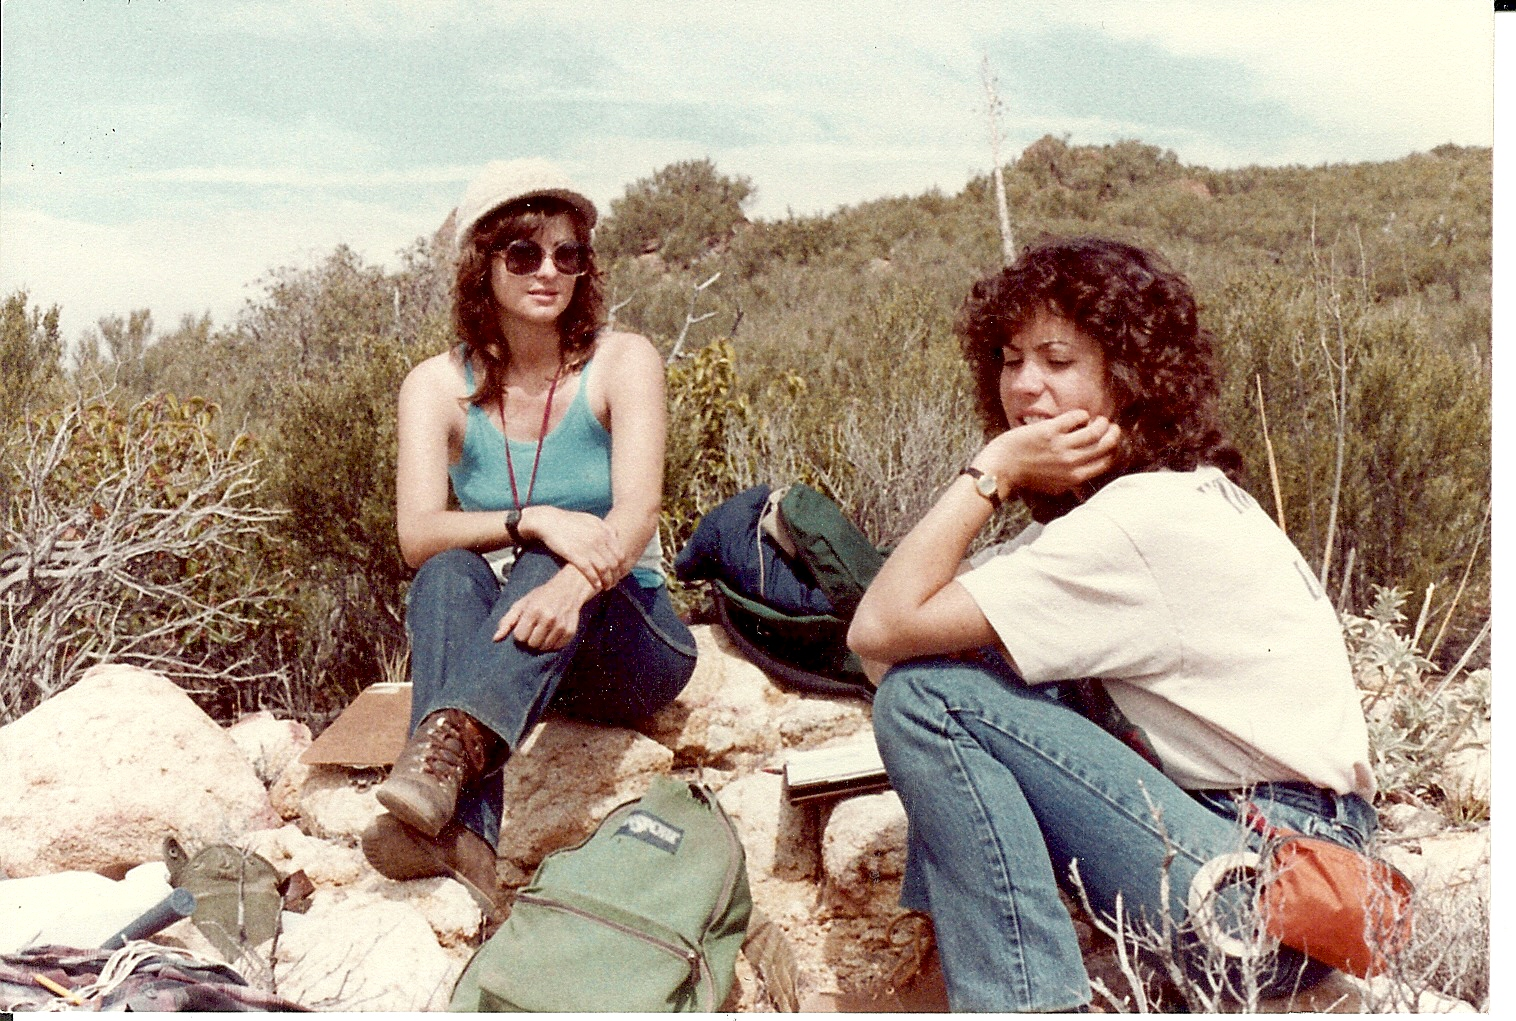 Cynthia Renee and a colleague doing field work outside San Diego among the mountains chains of molten rock